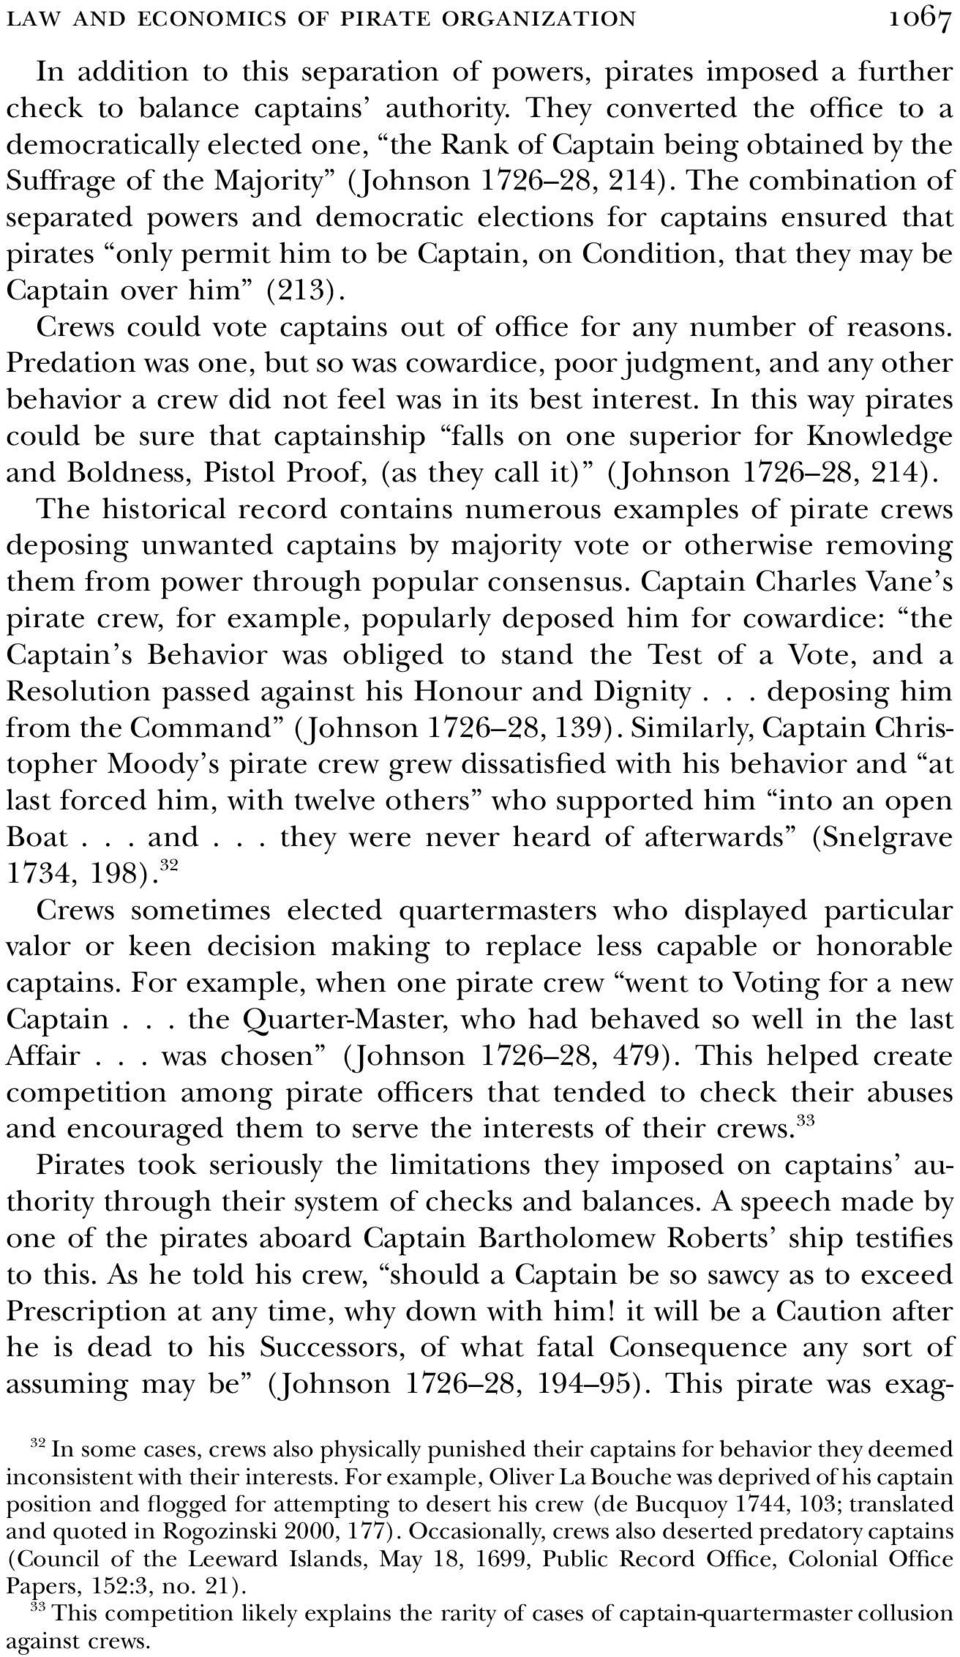 The combination of separated powers and democratic elections for captains ensured that pirates only permit him to be Captain, on Condition, that they may be Captain over him (213).